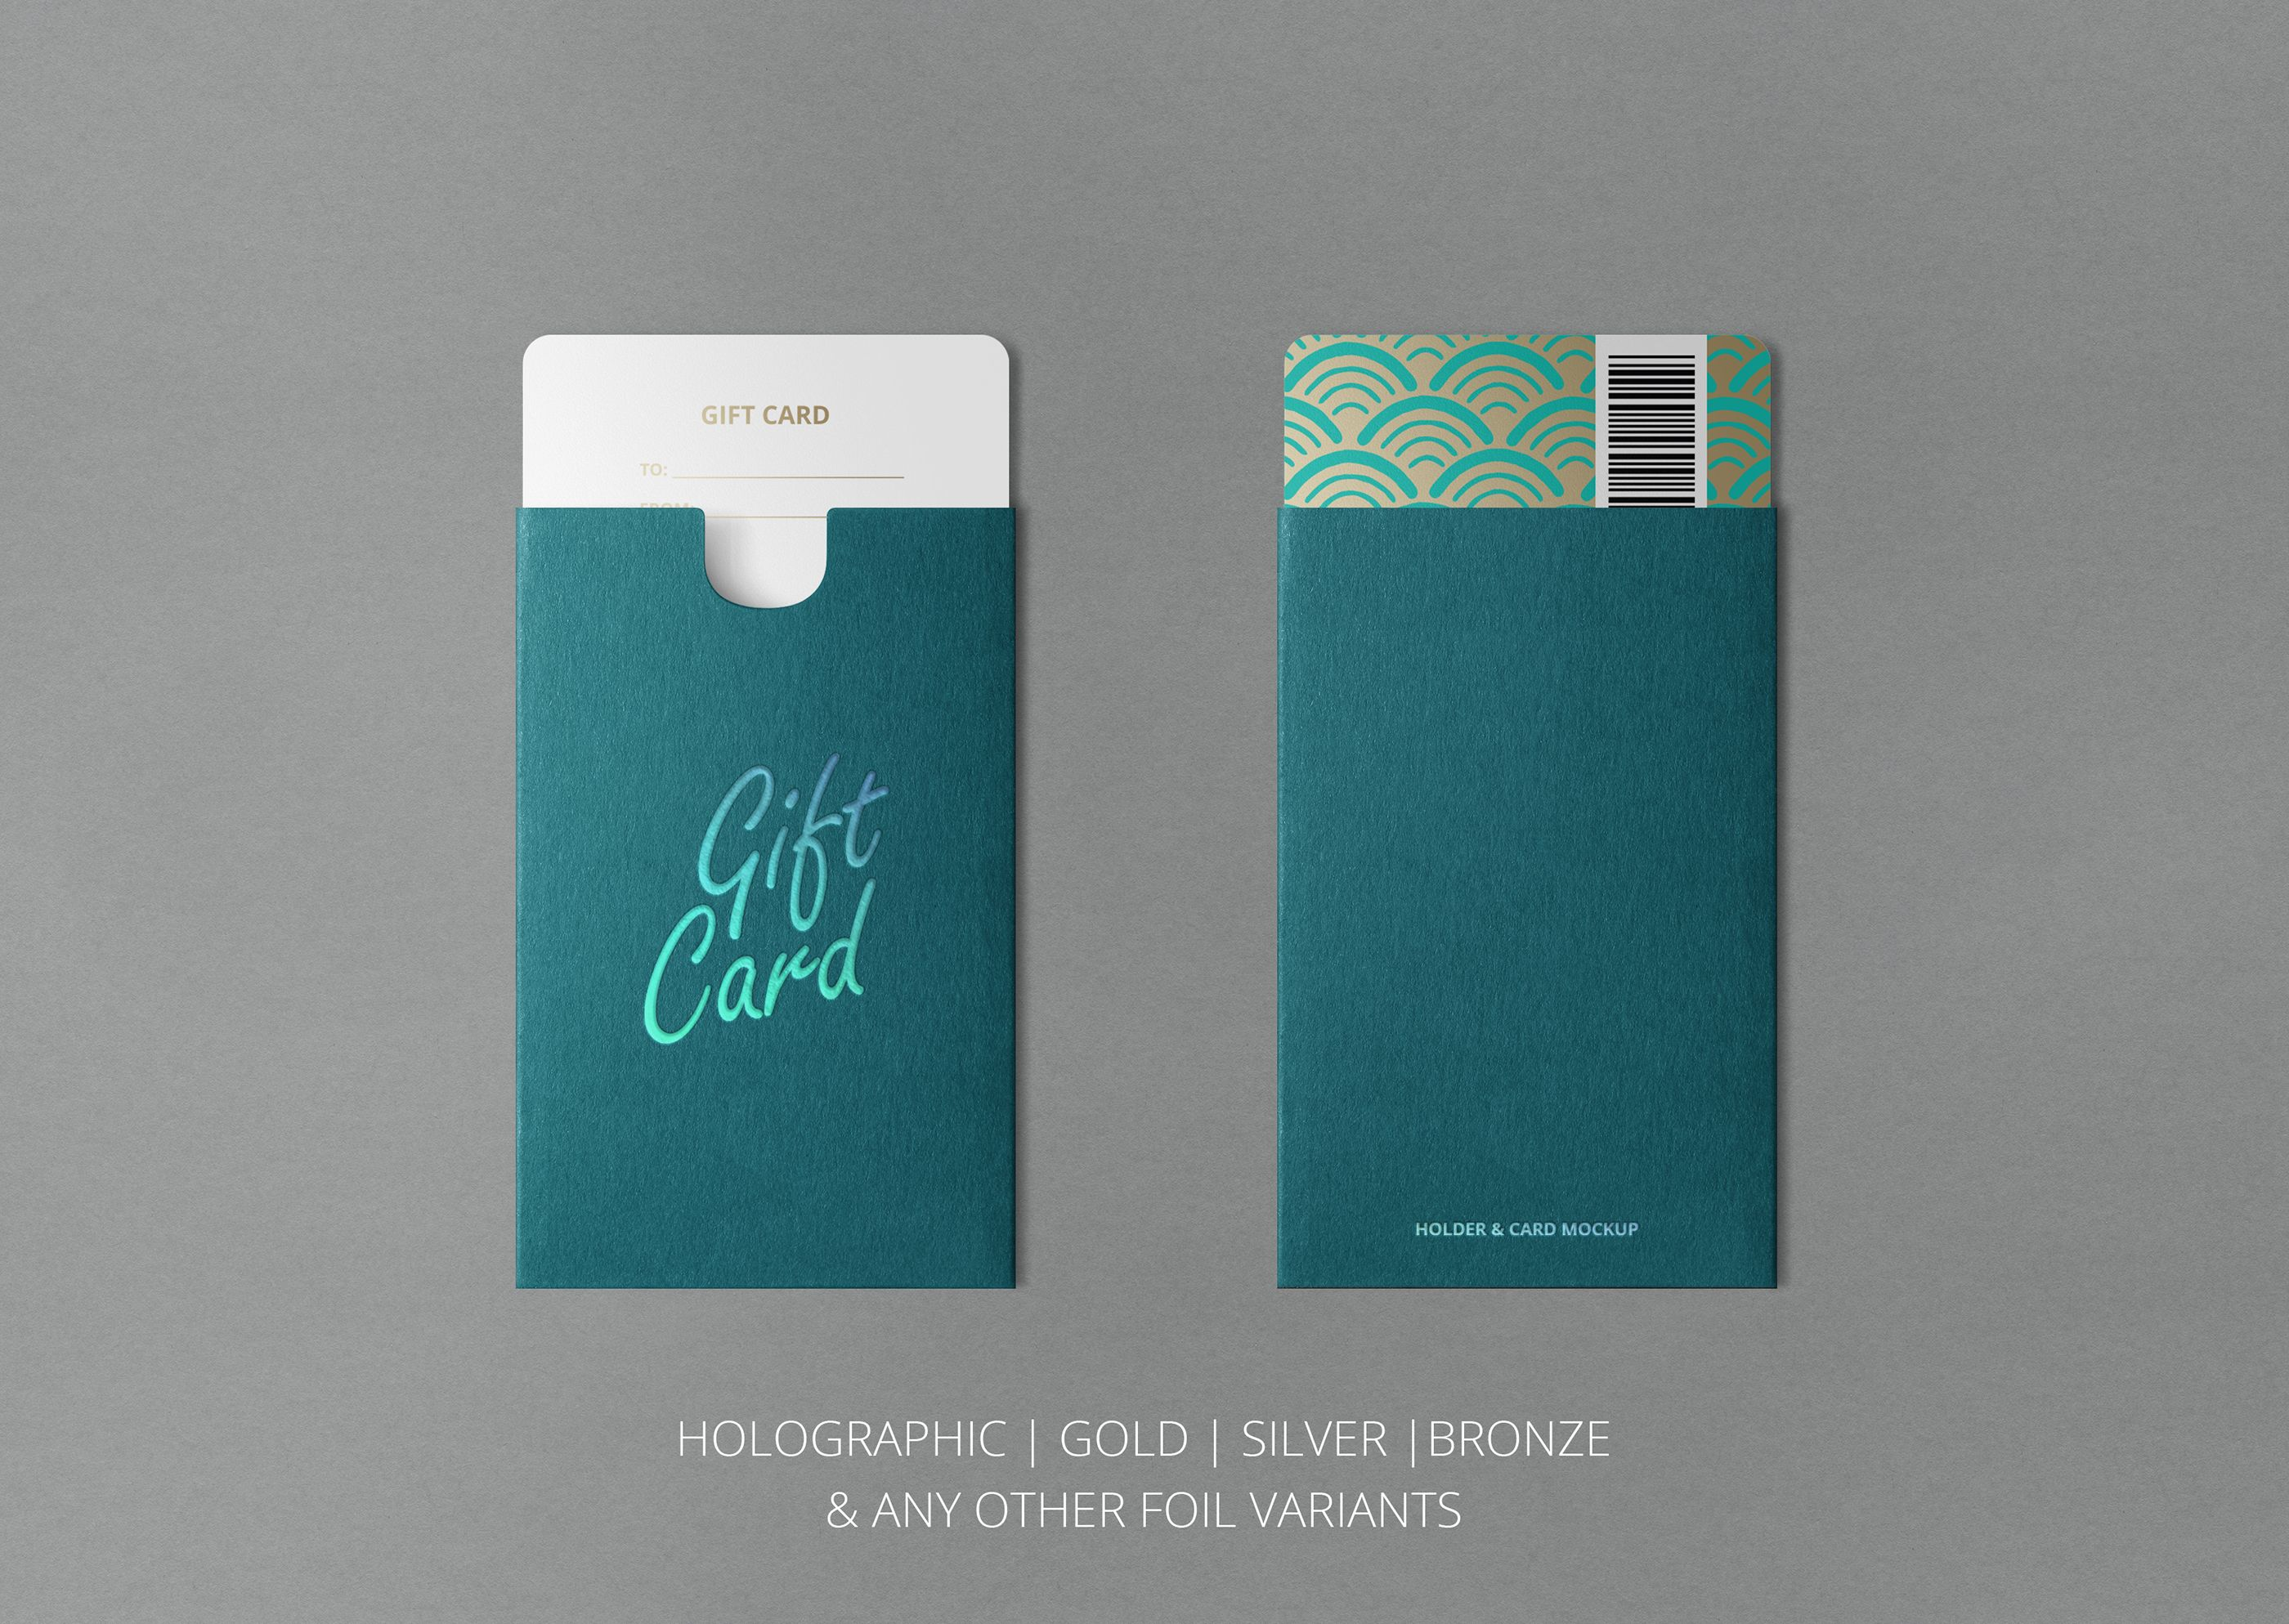 Gift Card Or Key Card Mockup Download From Clevery Design Gift